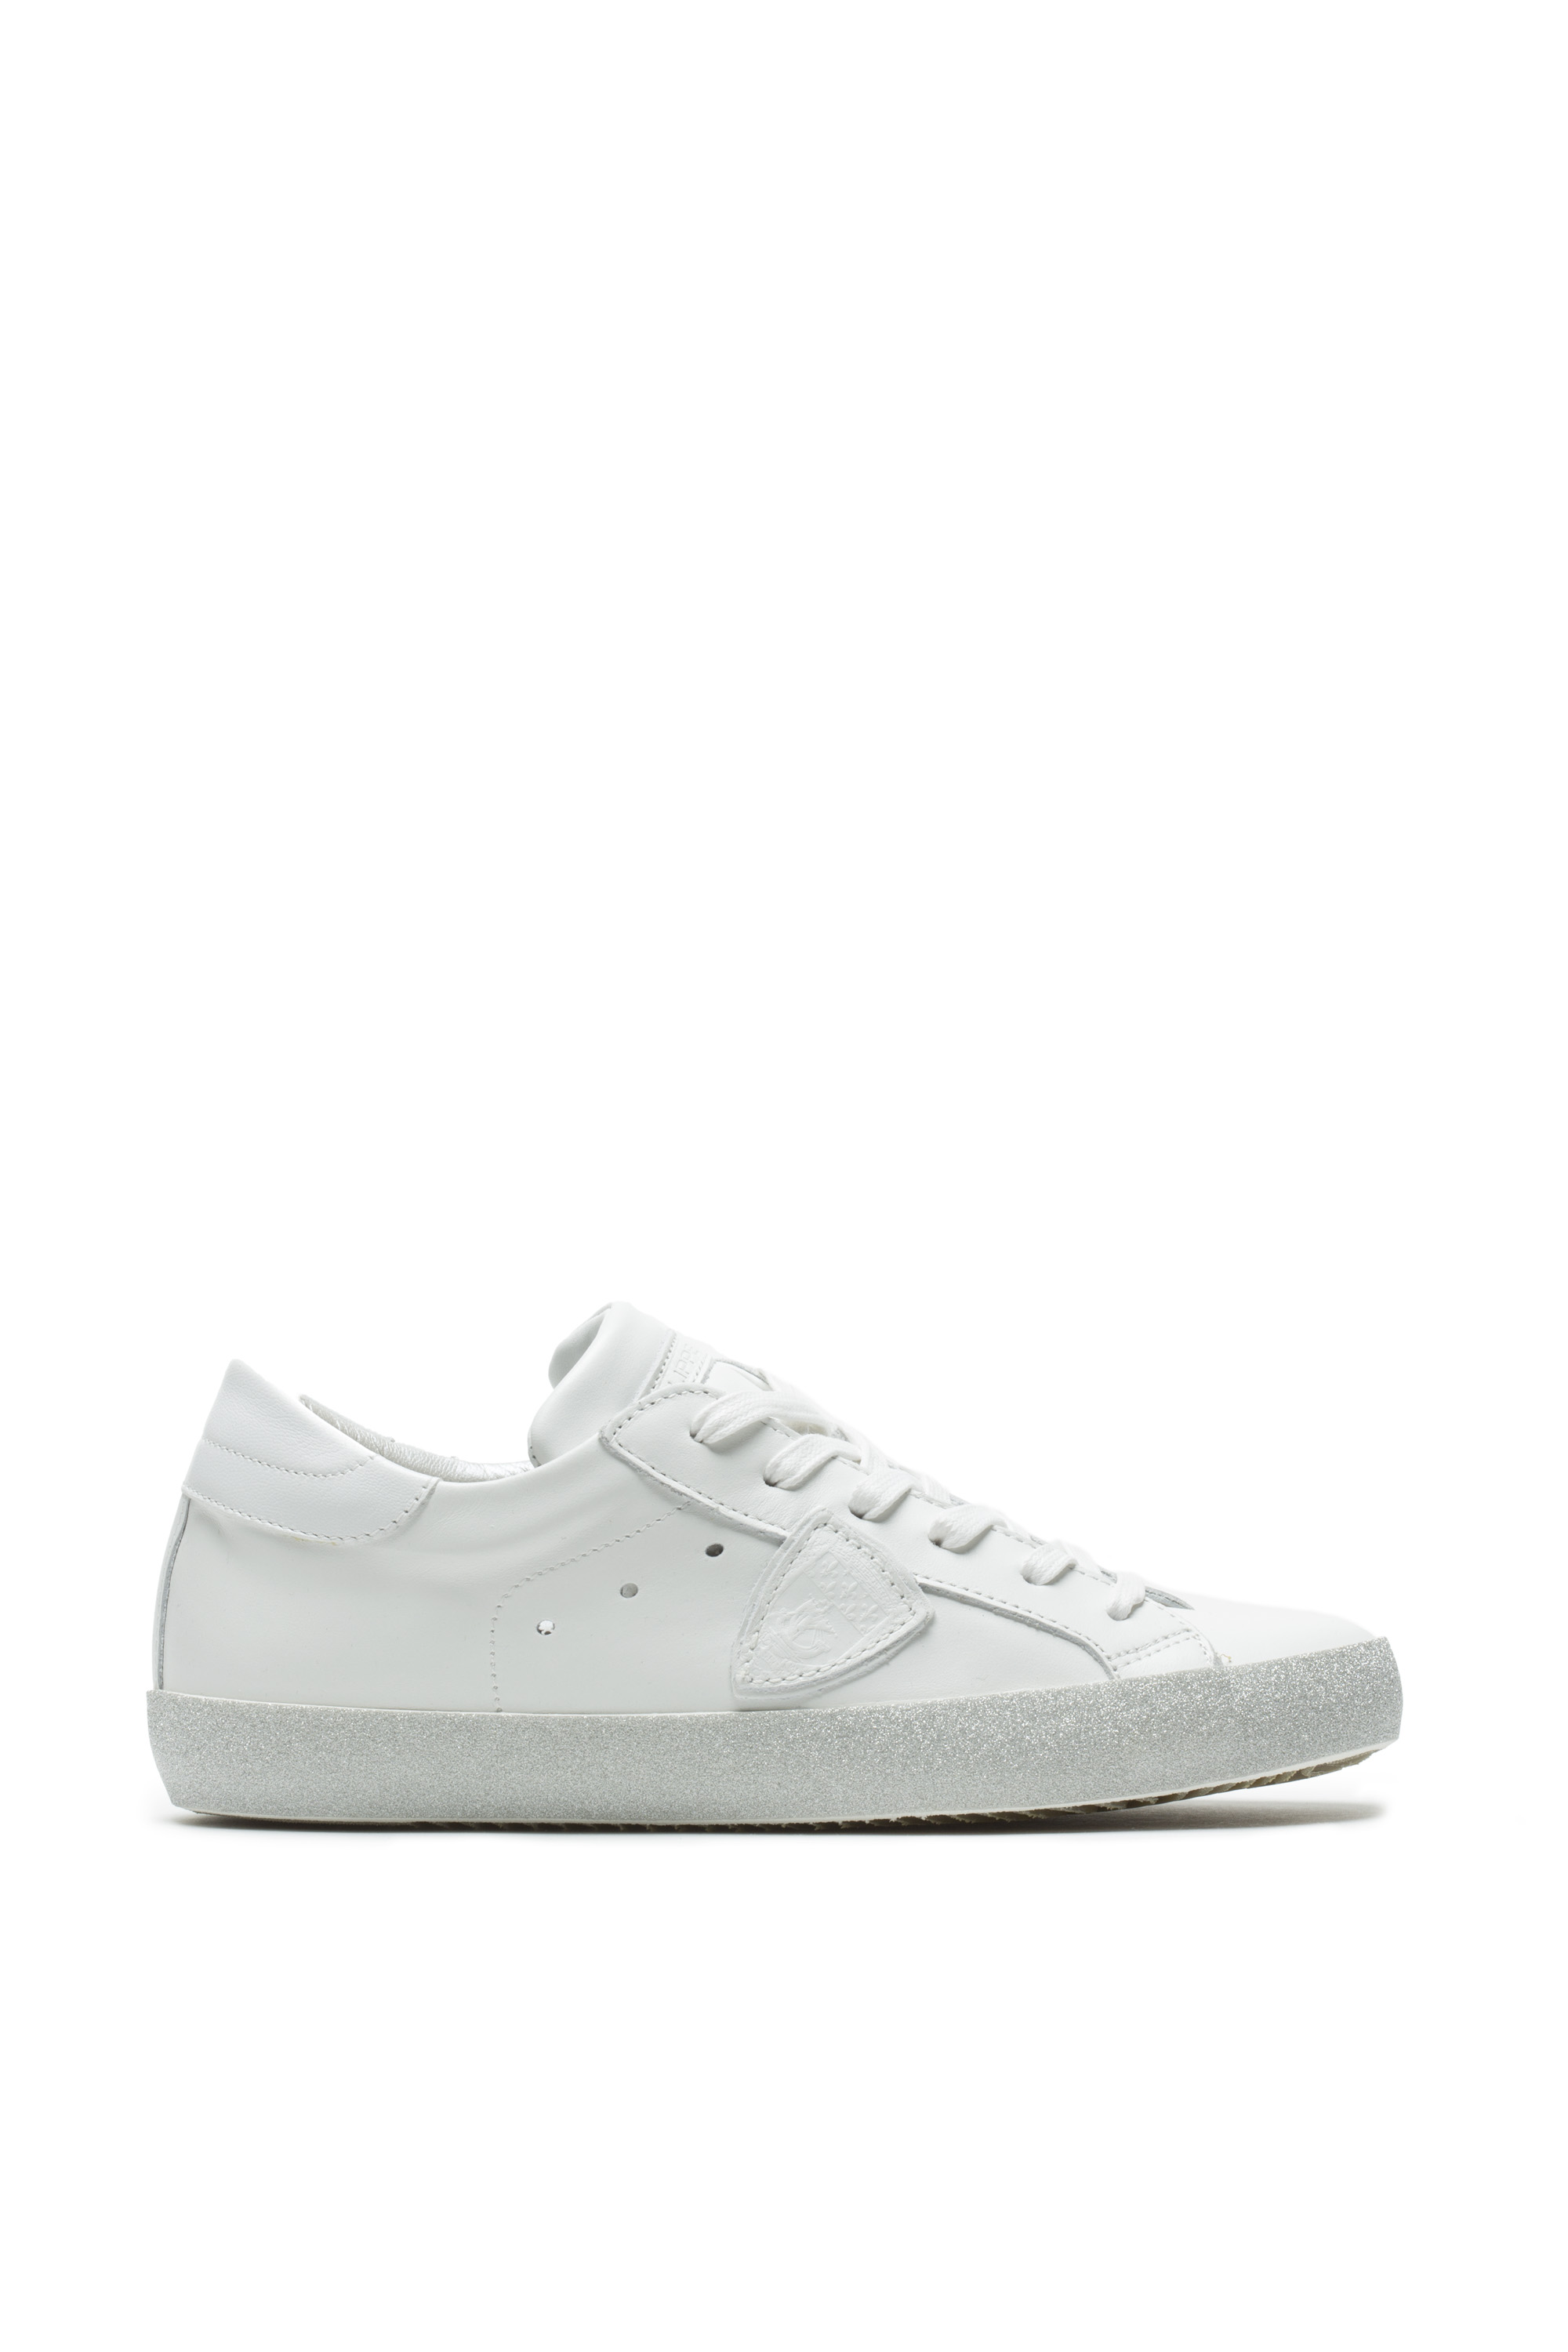 3c1b249ace Sneakers PHILIPPE MODEL CGLD VL08